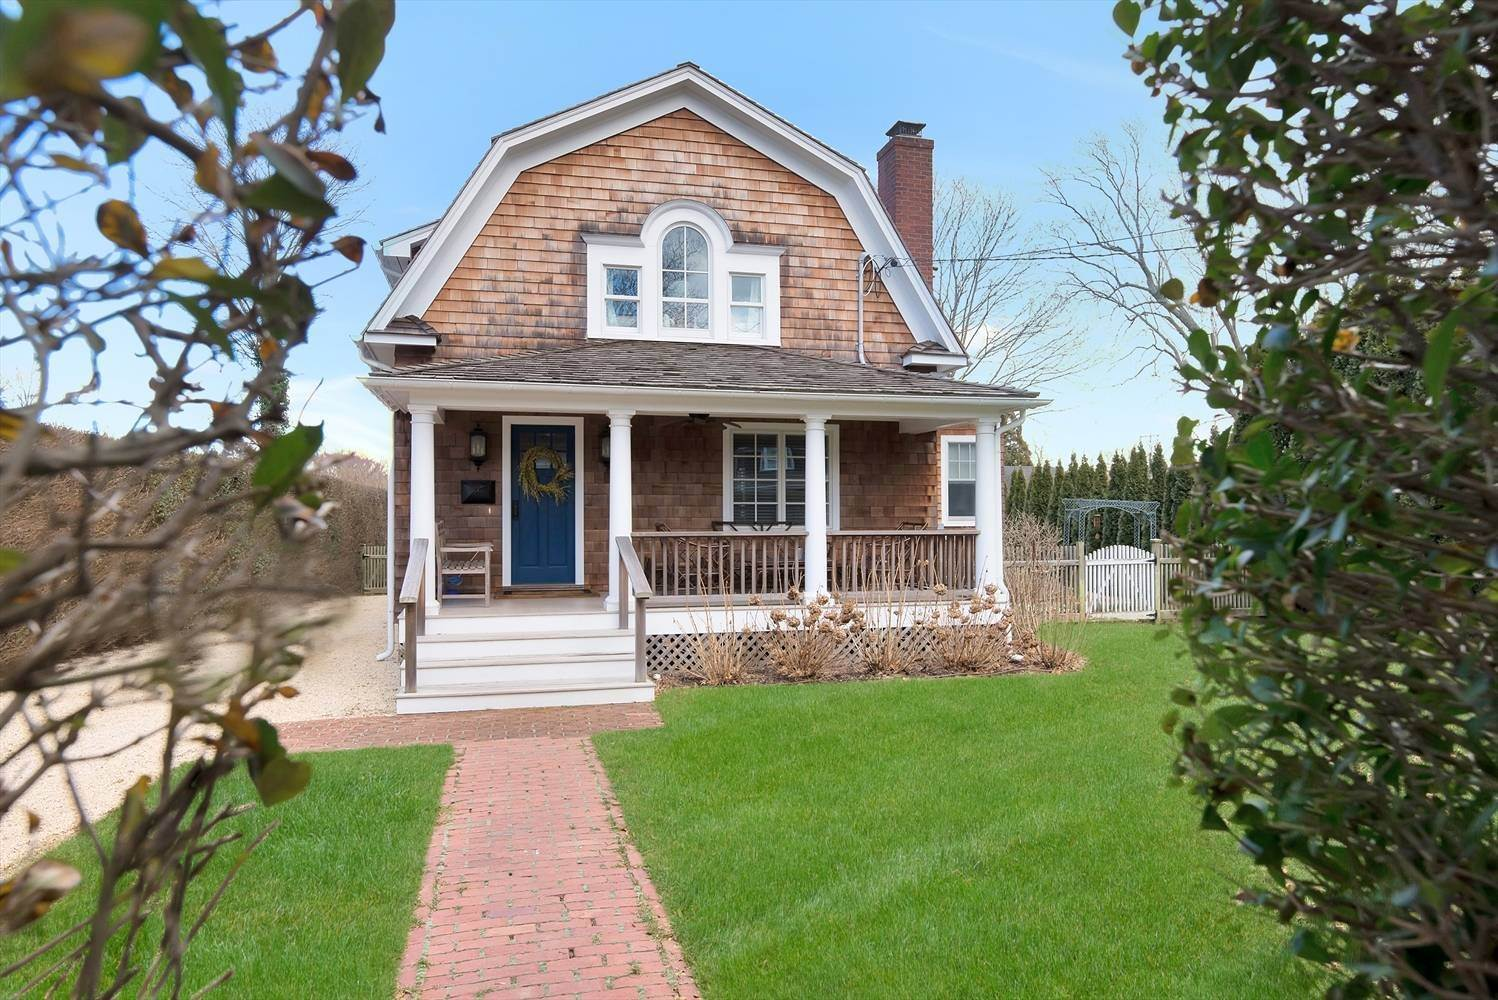 Single Family Home at Beautifully Decorated Village Home With New Pool And Pool House Southampton, NY 11968